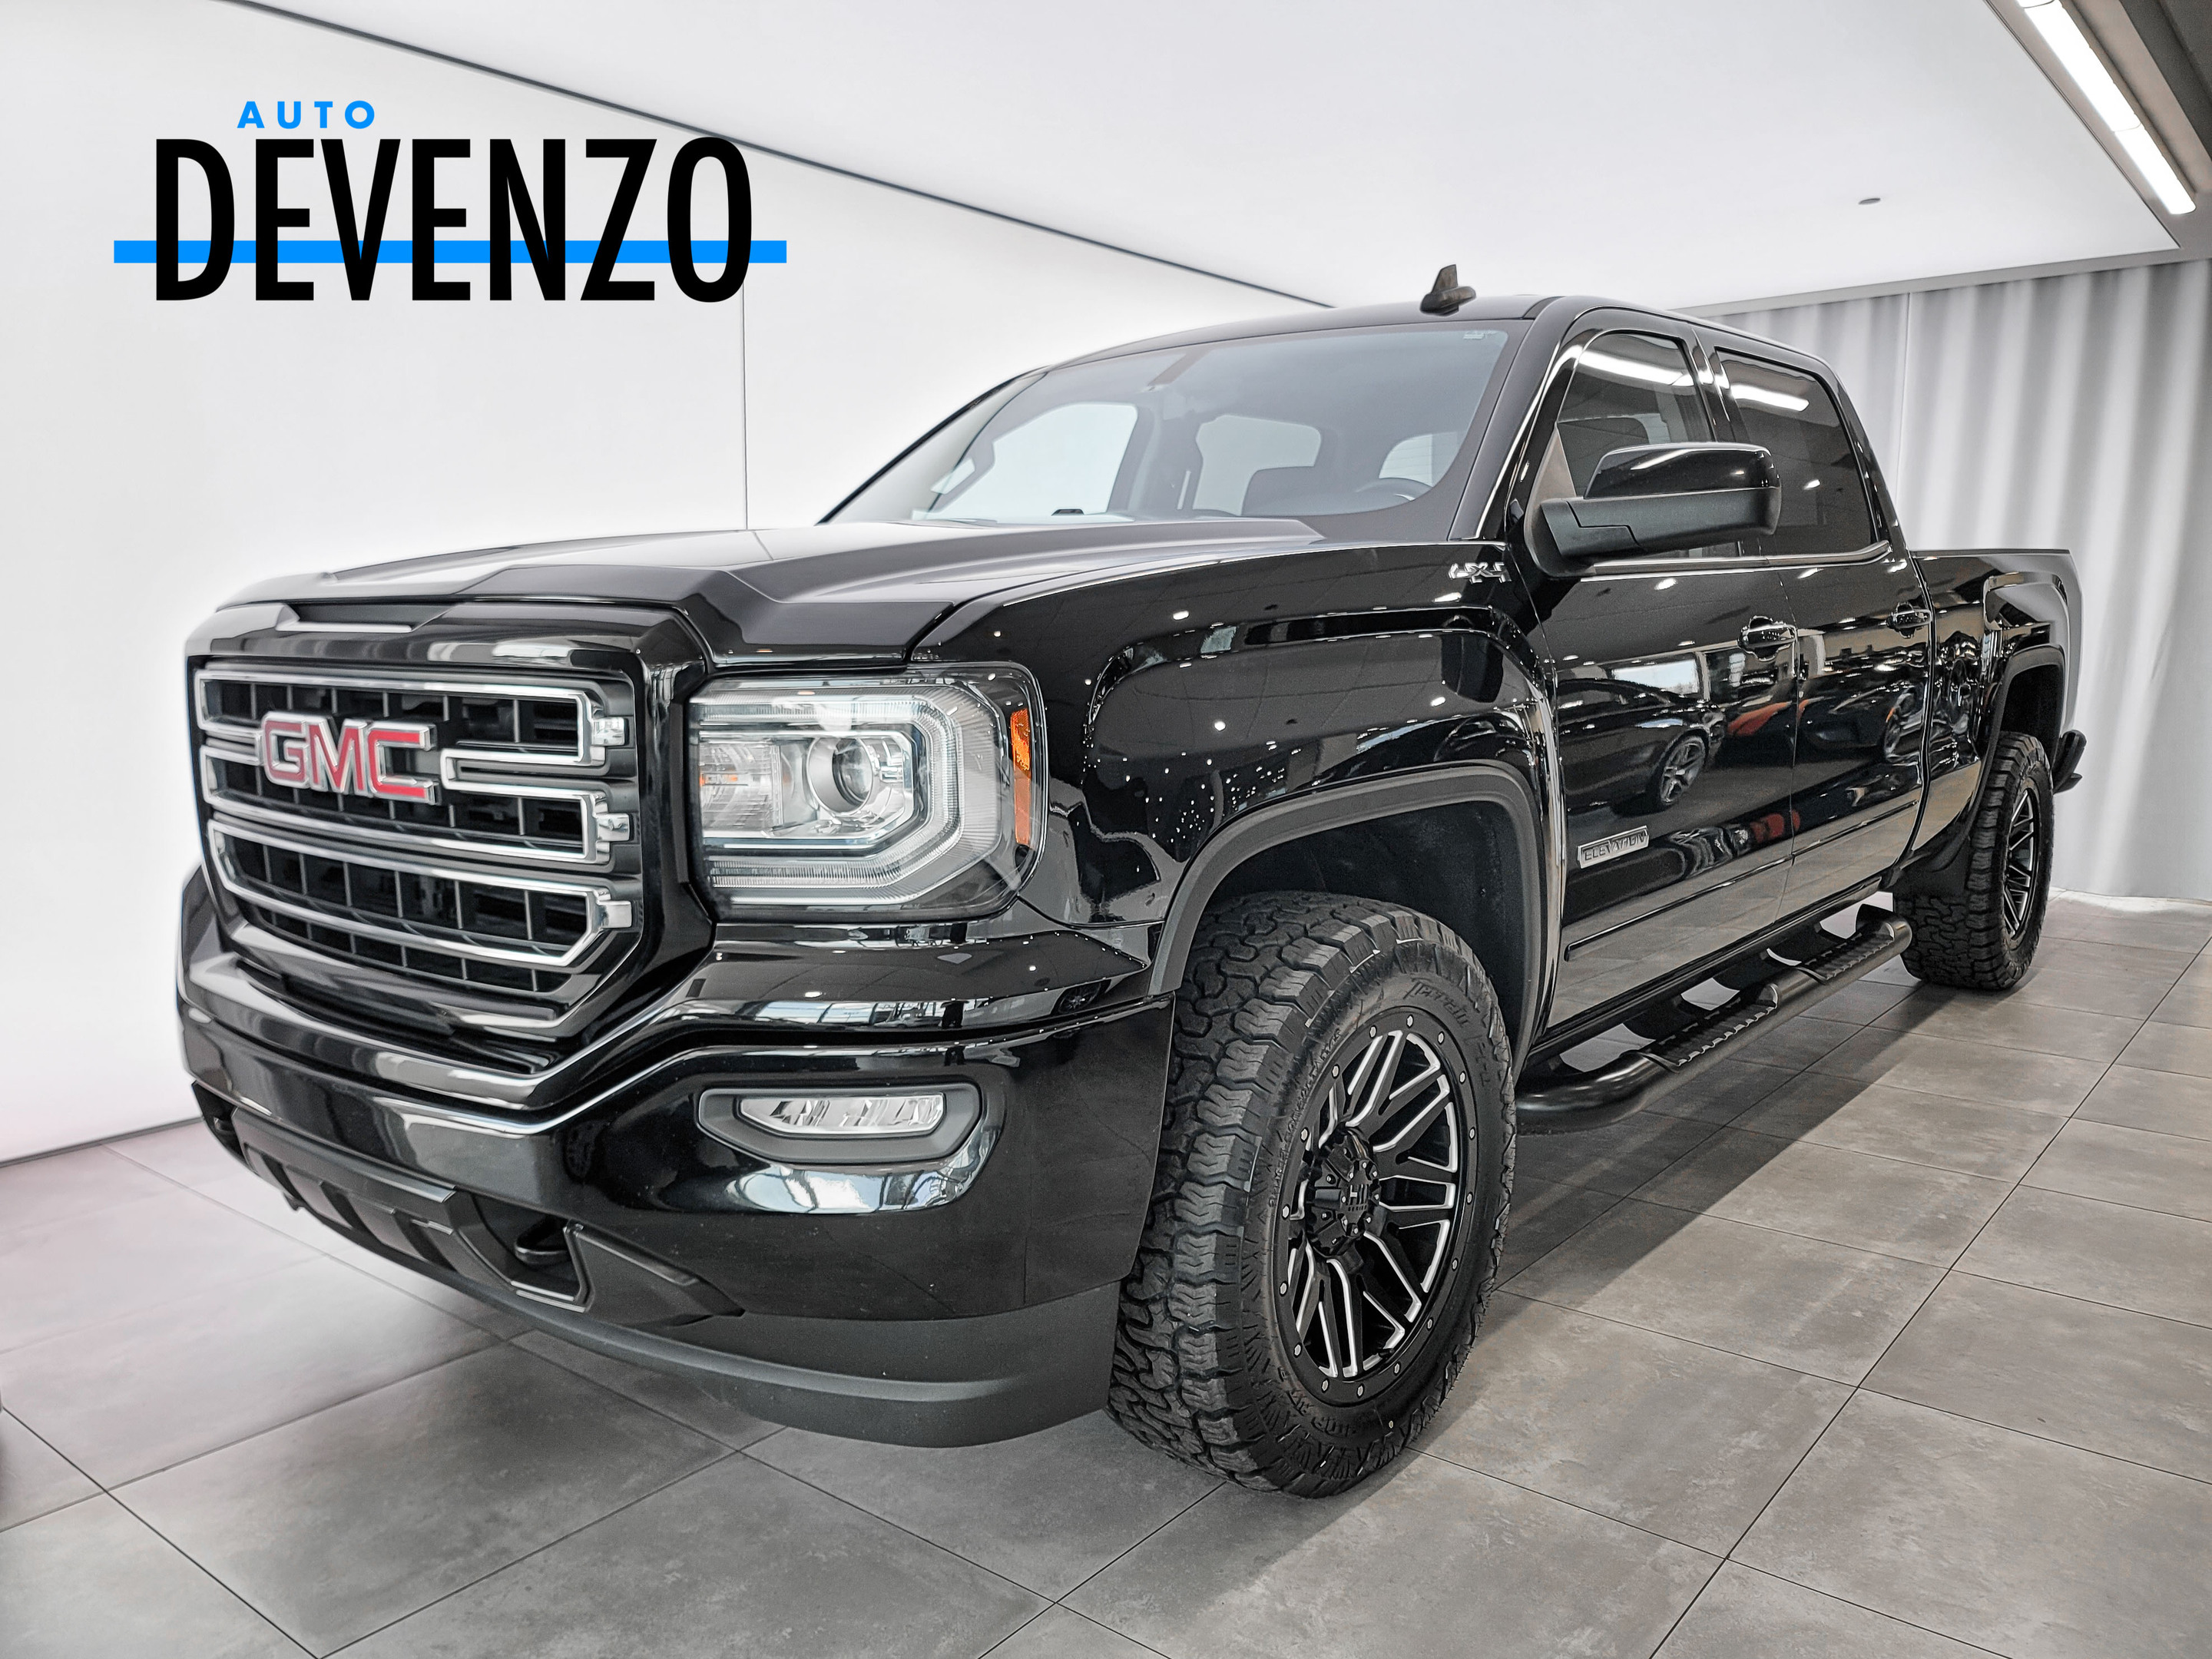 2017 GMC Sierra 1500 4WD CREW CAB 153.0 SLE 5.3L ELEVATION complet